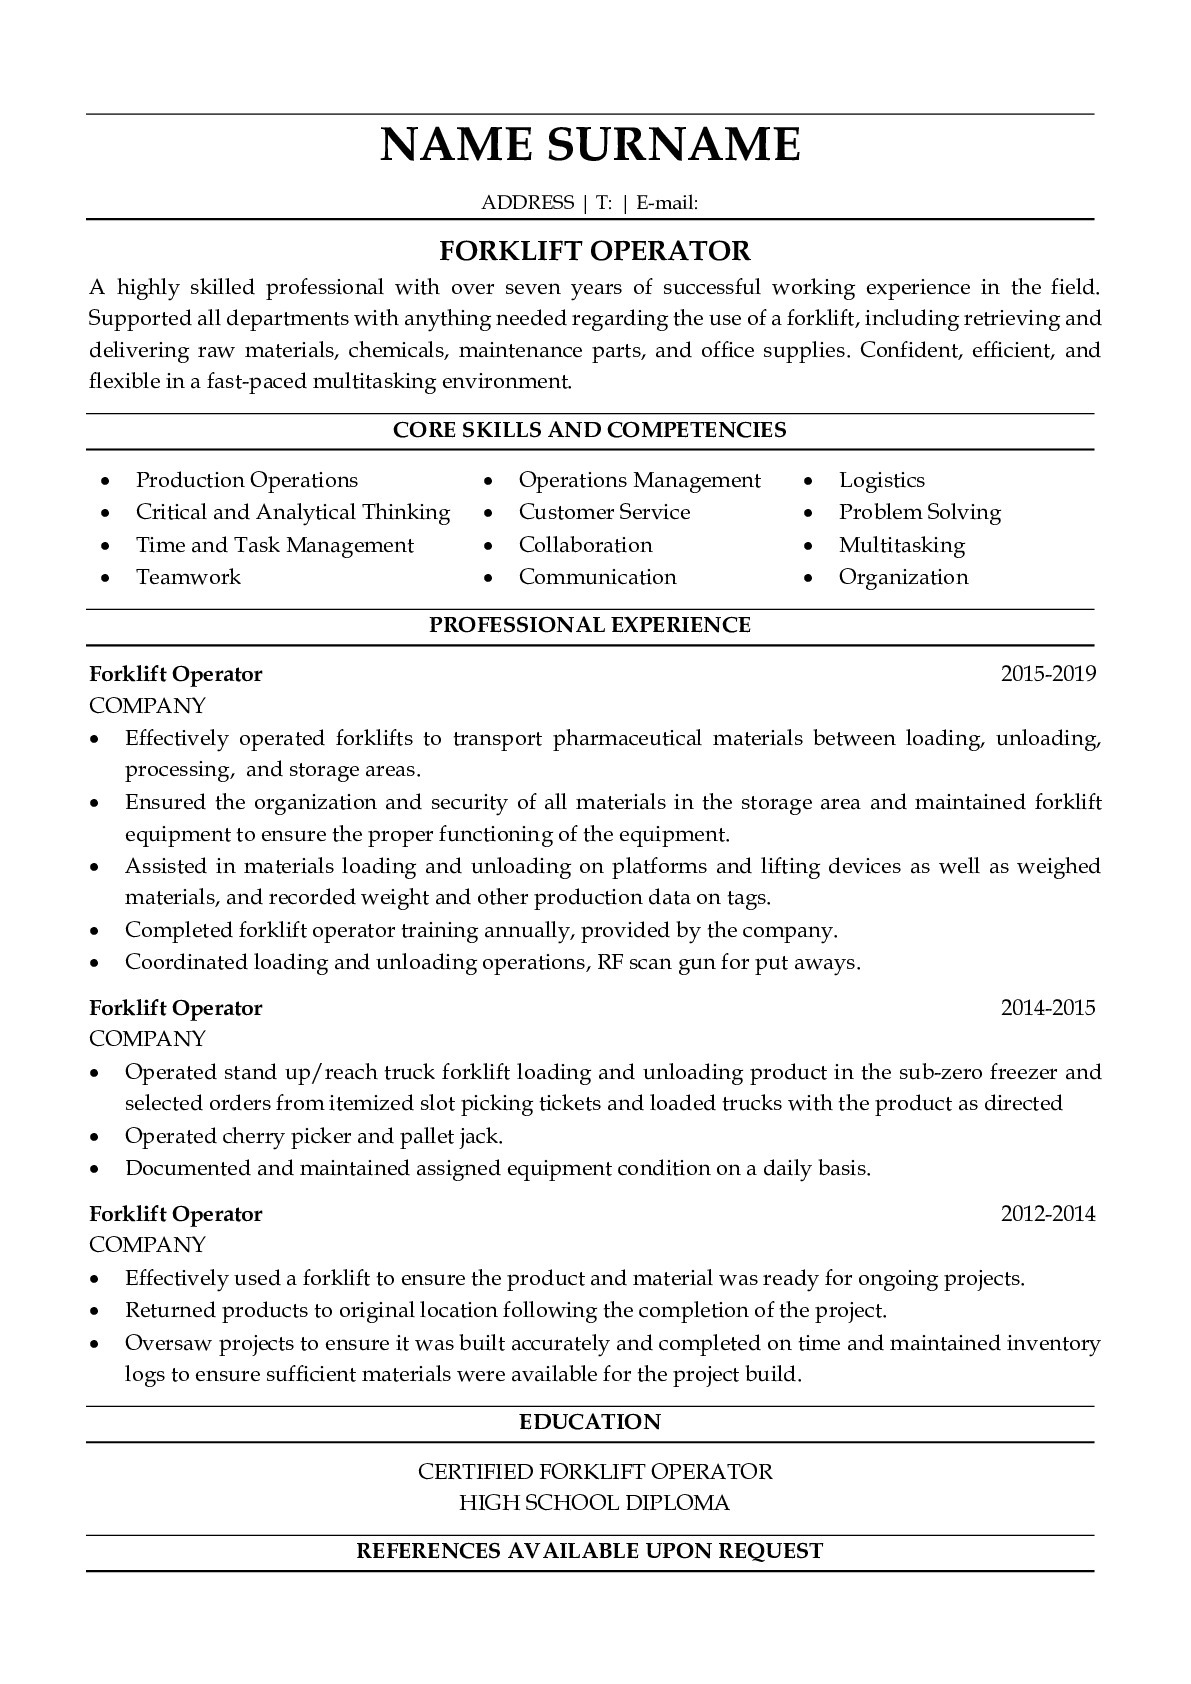 Resume Example for Forklift Operator